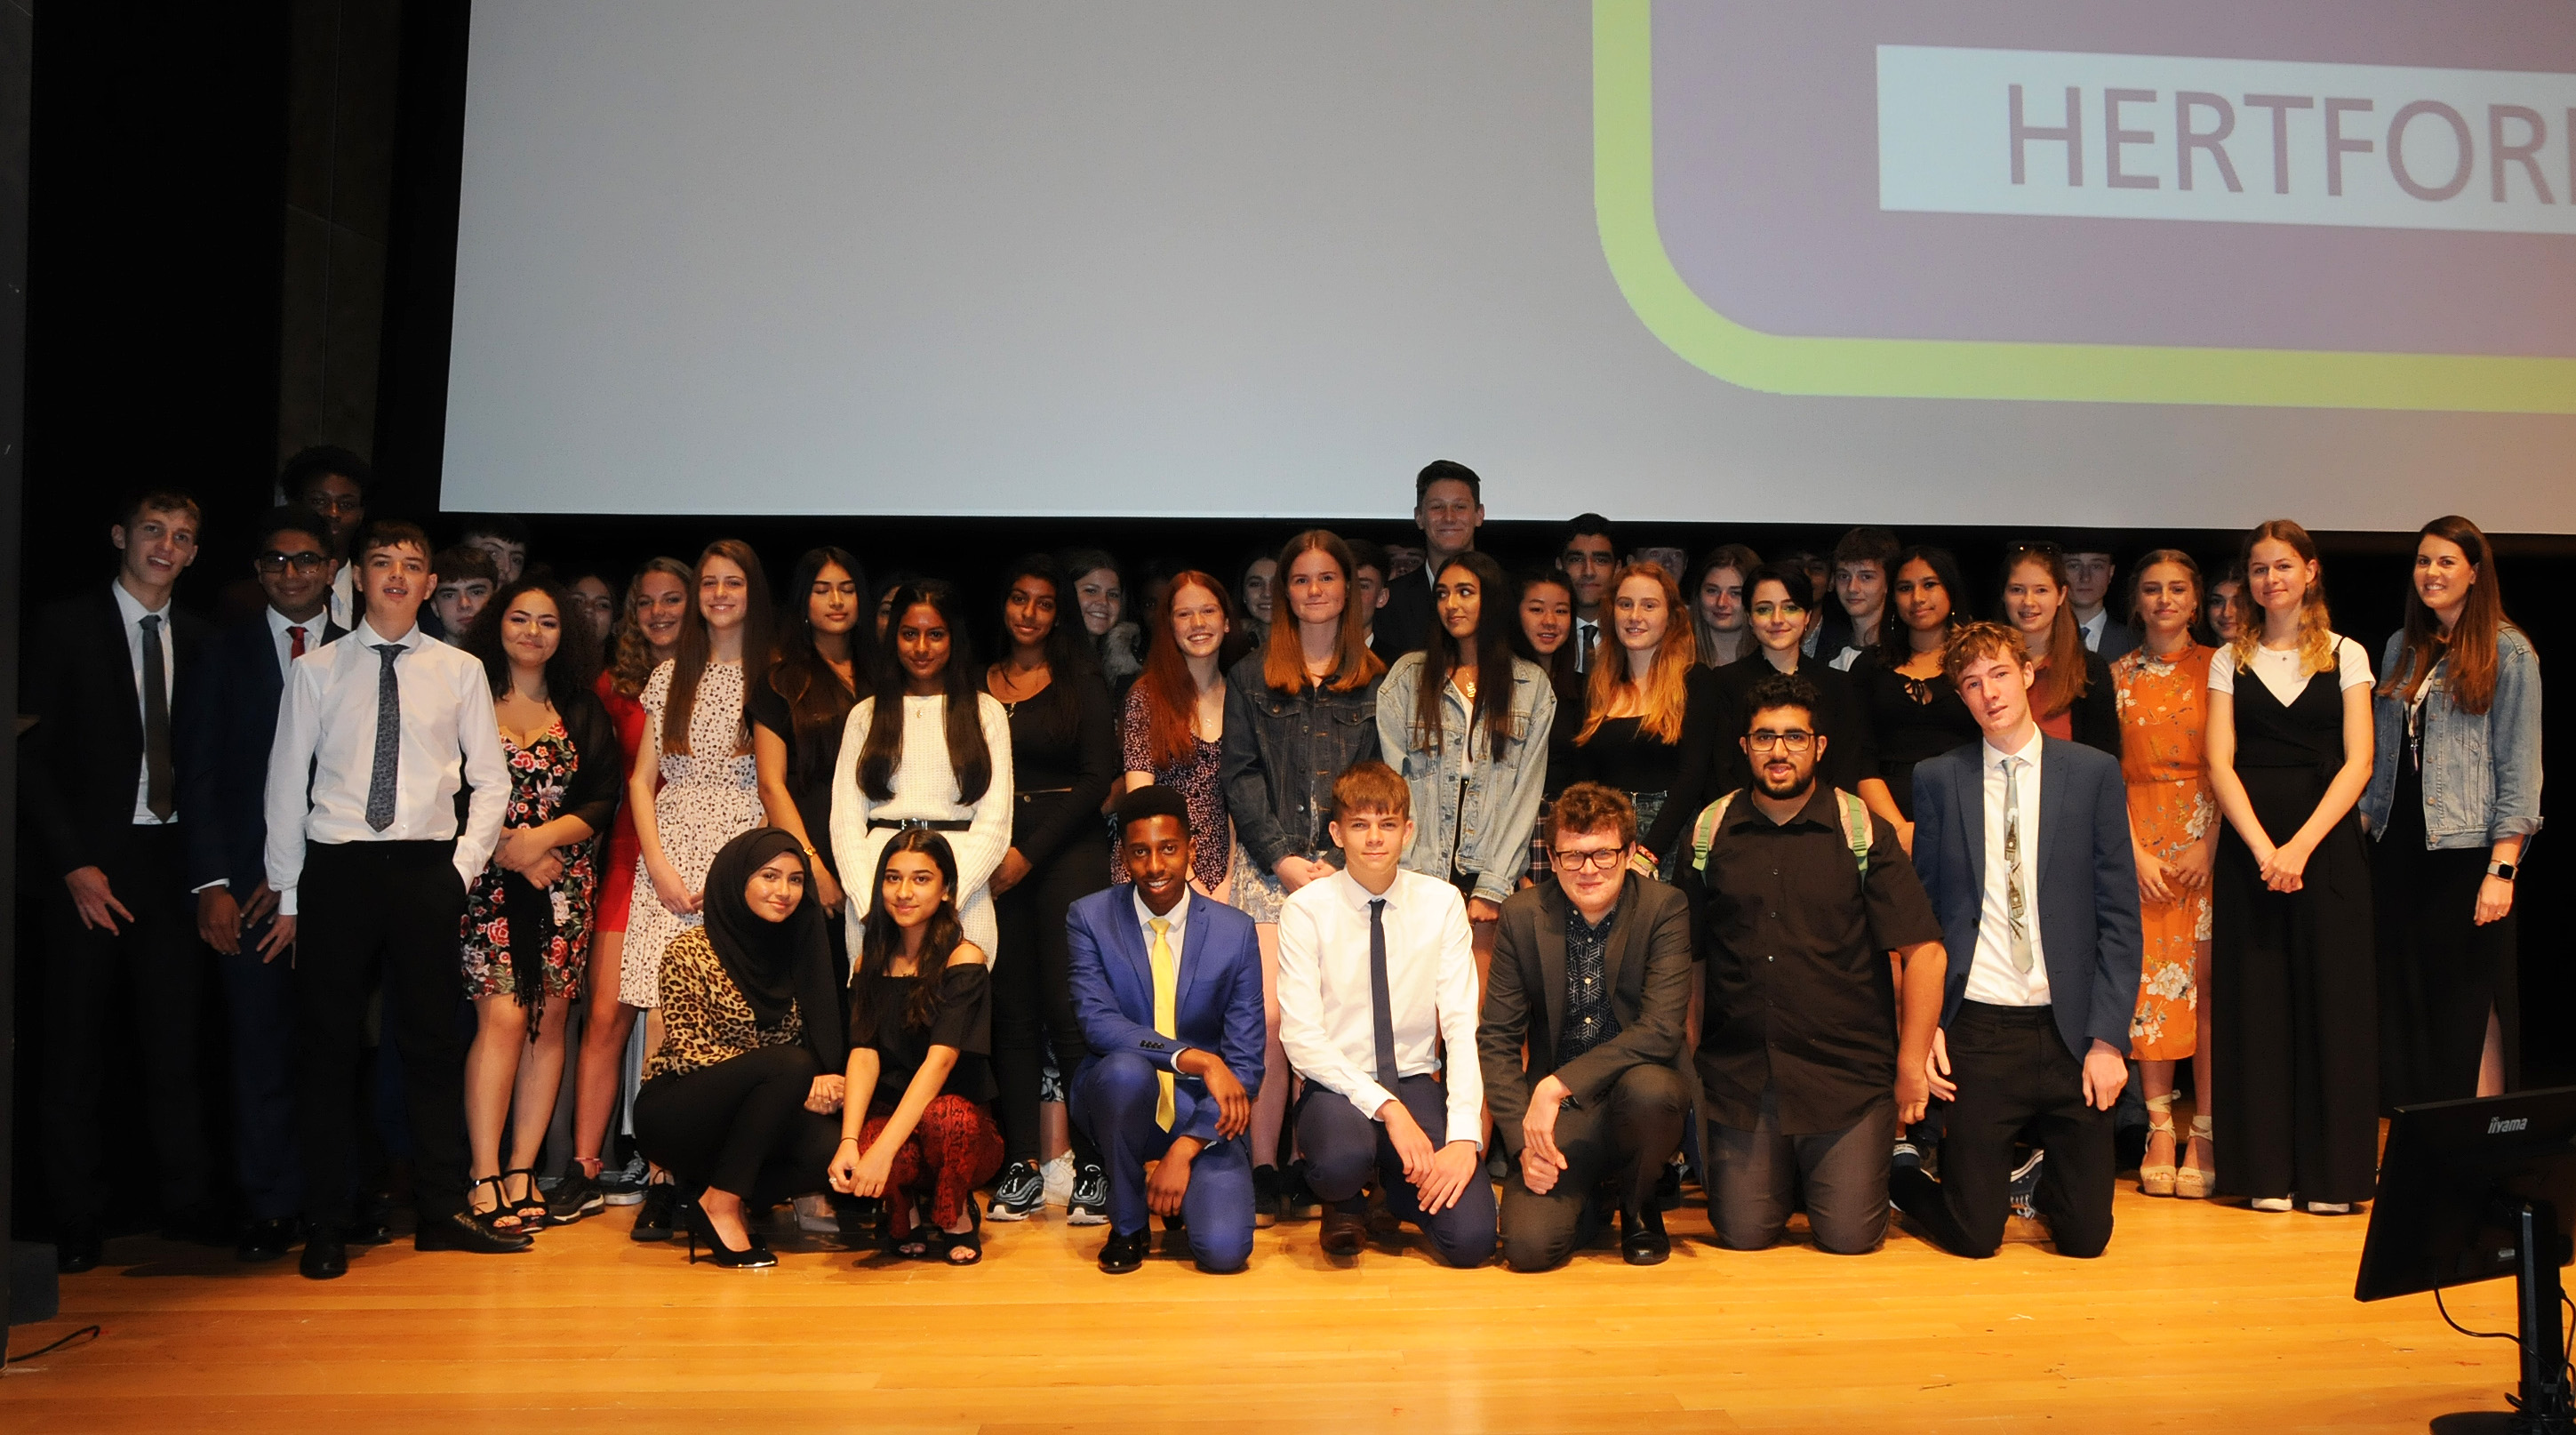 National Citizen Service Graduation celebrates young people's achievements with YC Hertfordshire